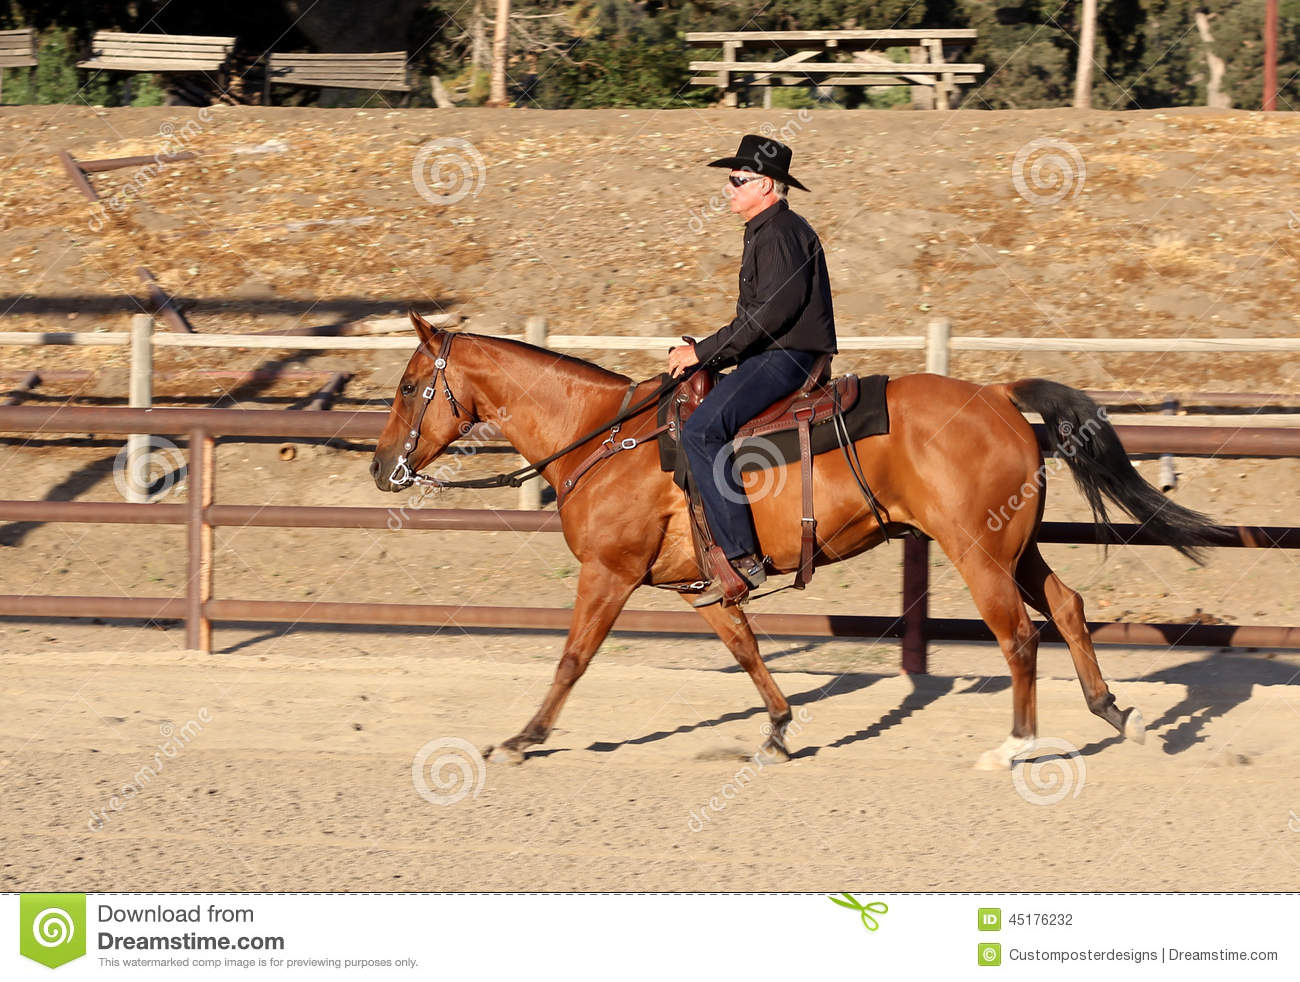 Download A Cowboy Riding His Horse In An Arena. Stock Photo - Image of reining, drama: 45176232